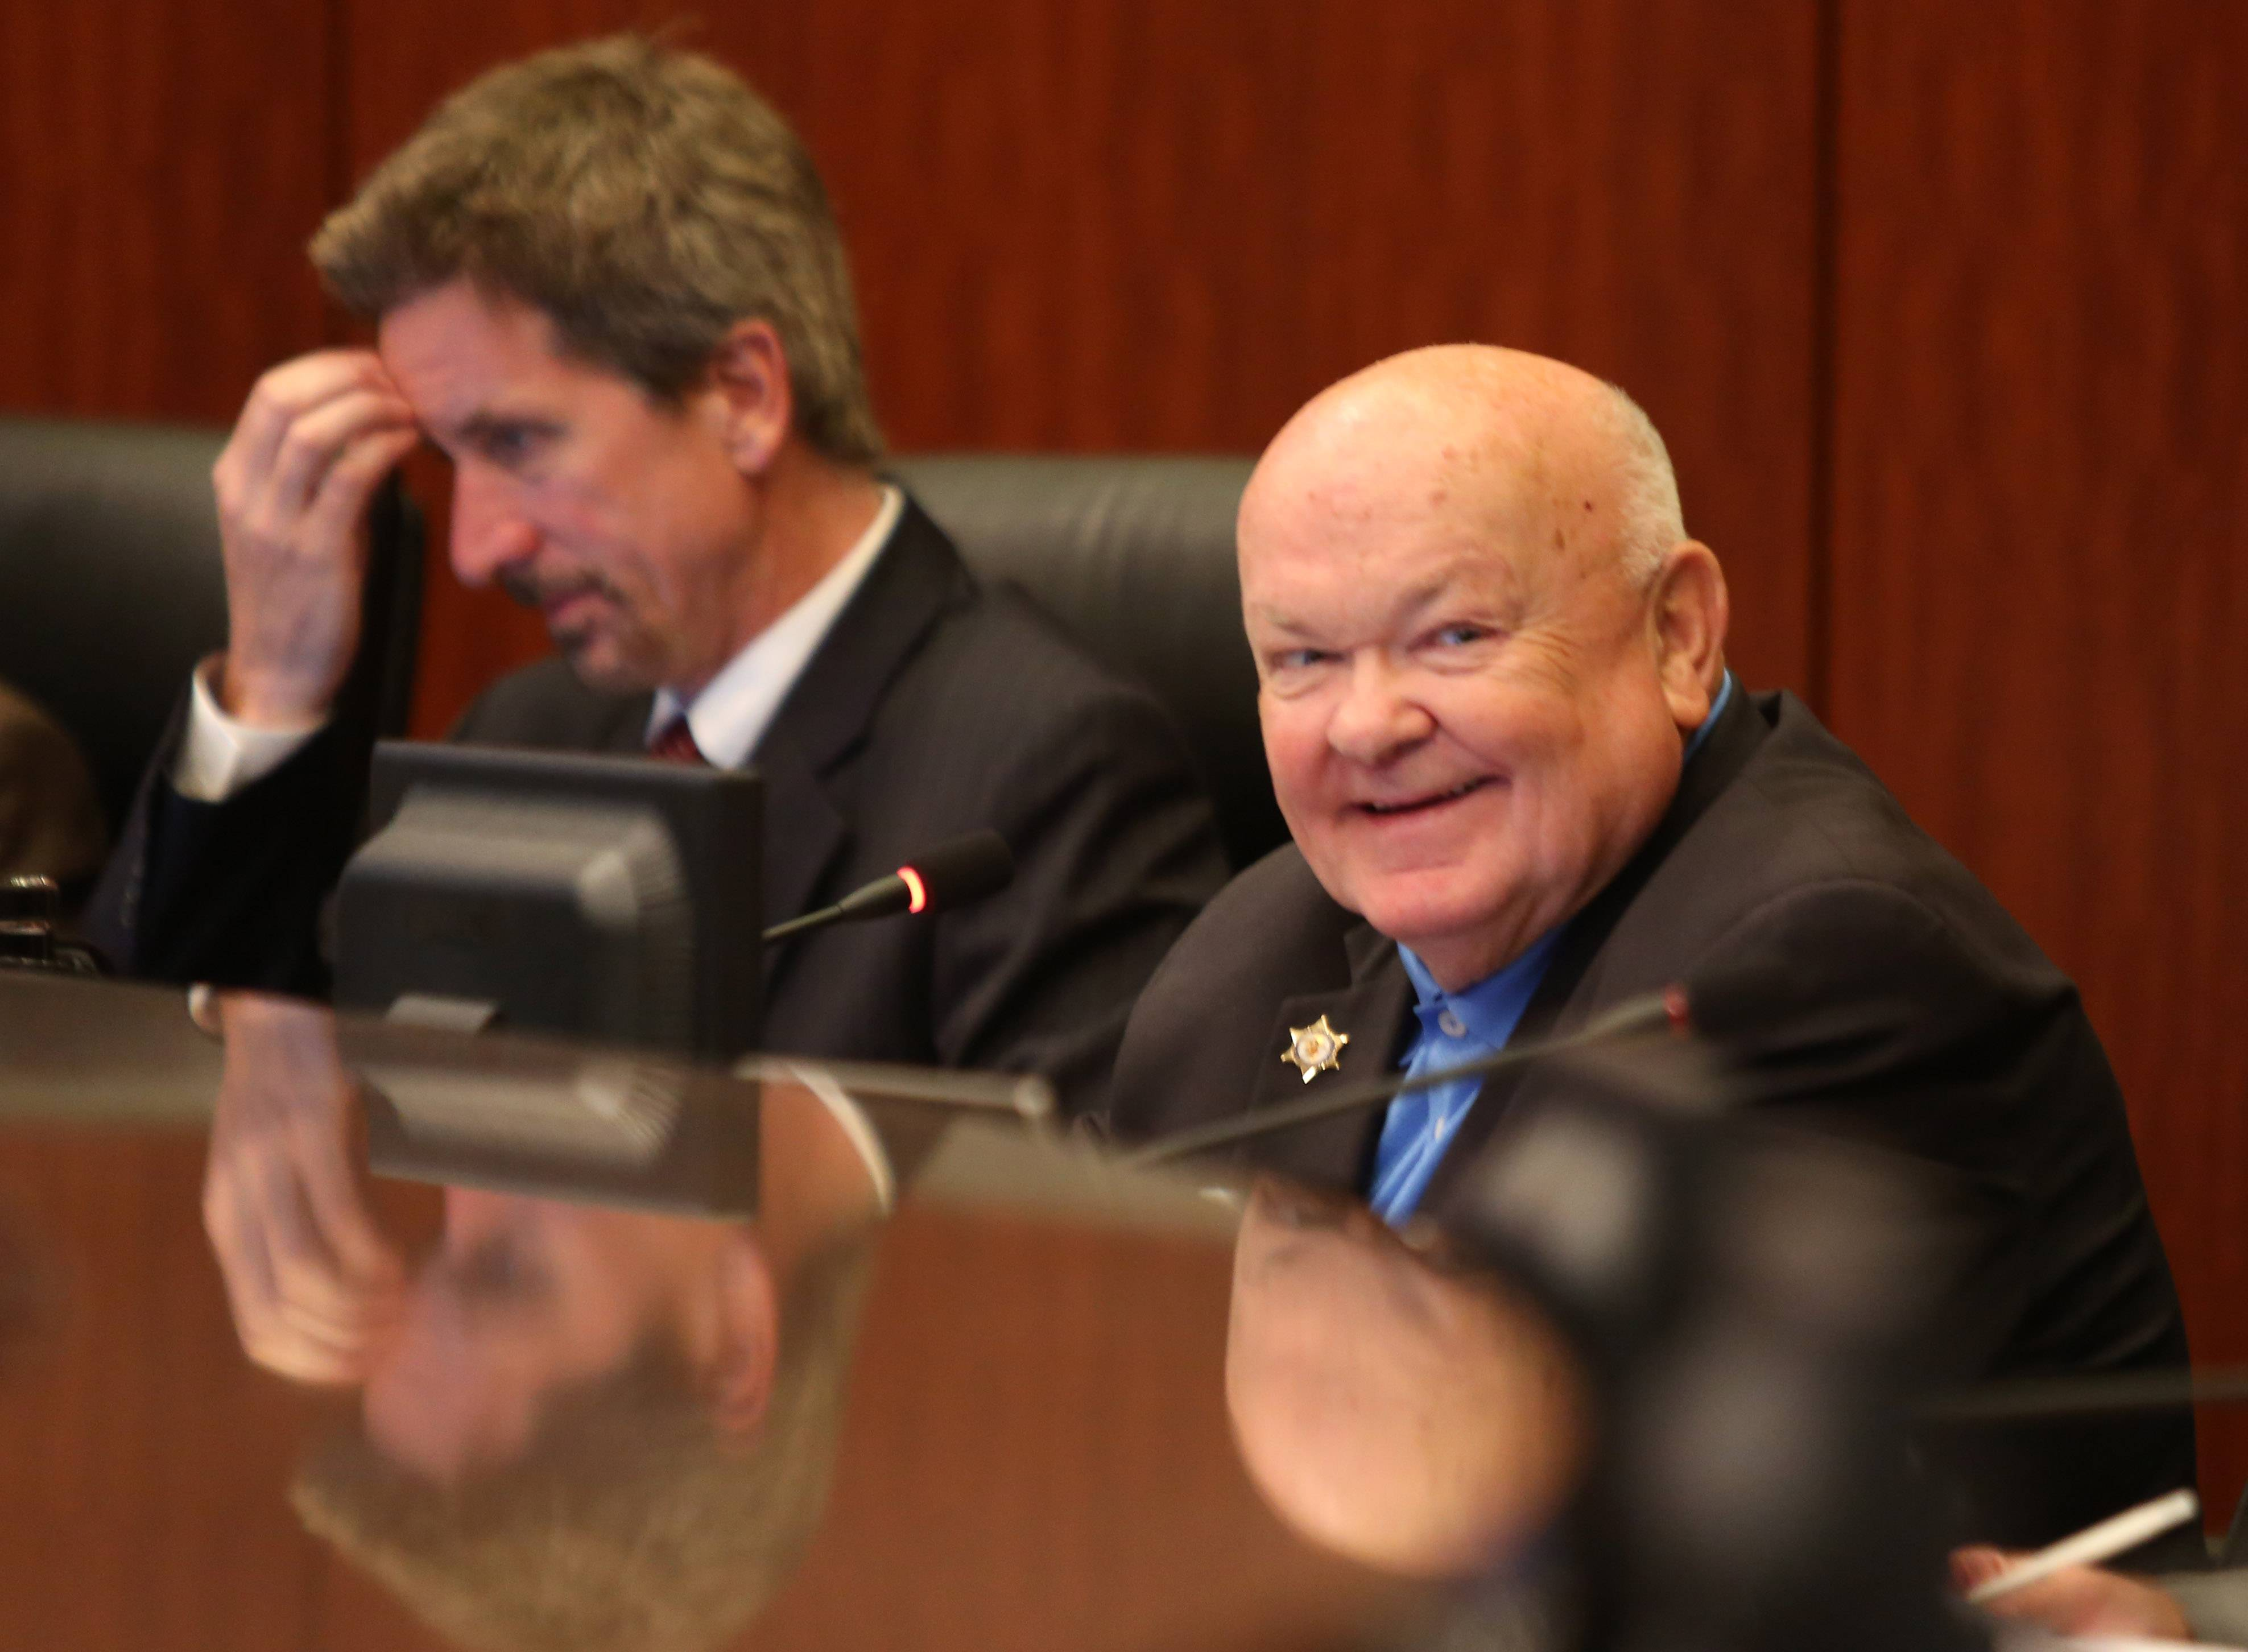 Naperville Mayor George Pradel, right, listens to a resident address the city council about proposed legislation limiting the sale of puppies from so-called puppy mills. At left is Douglas Krieger, city manager.